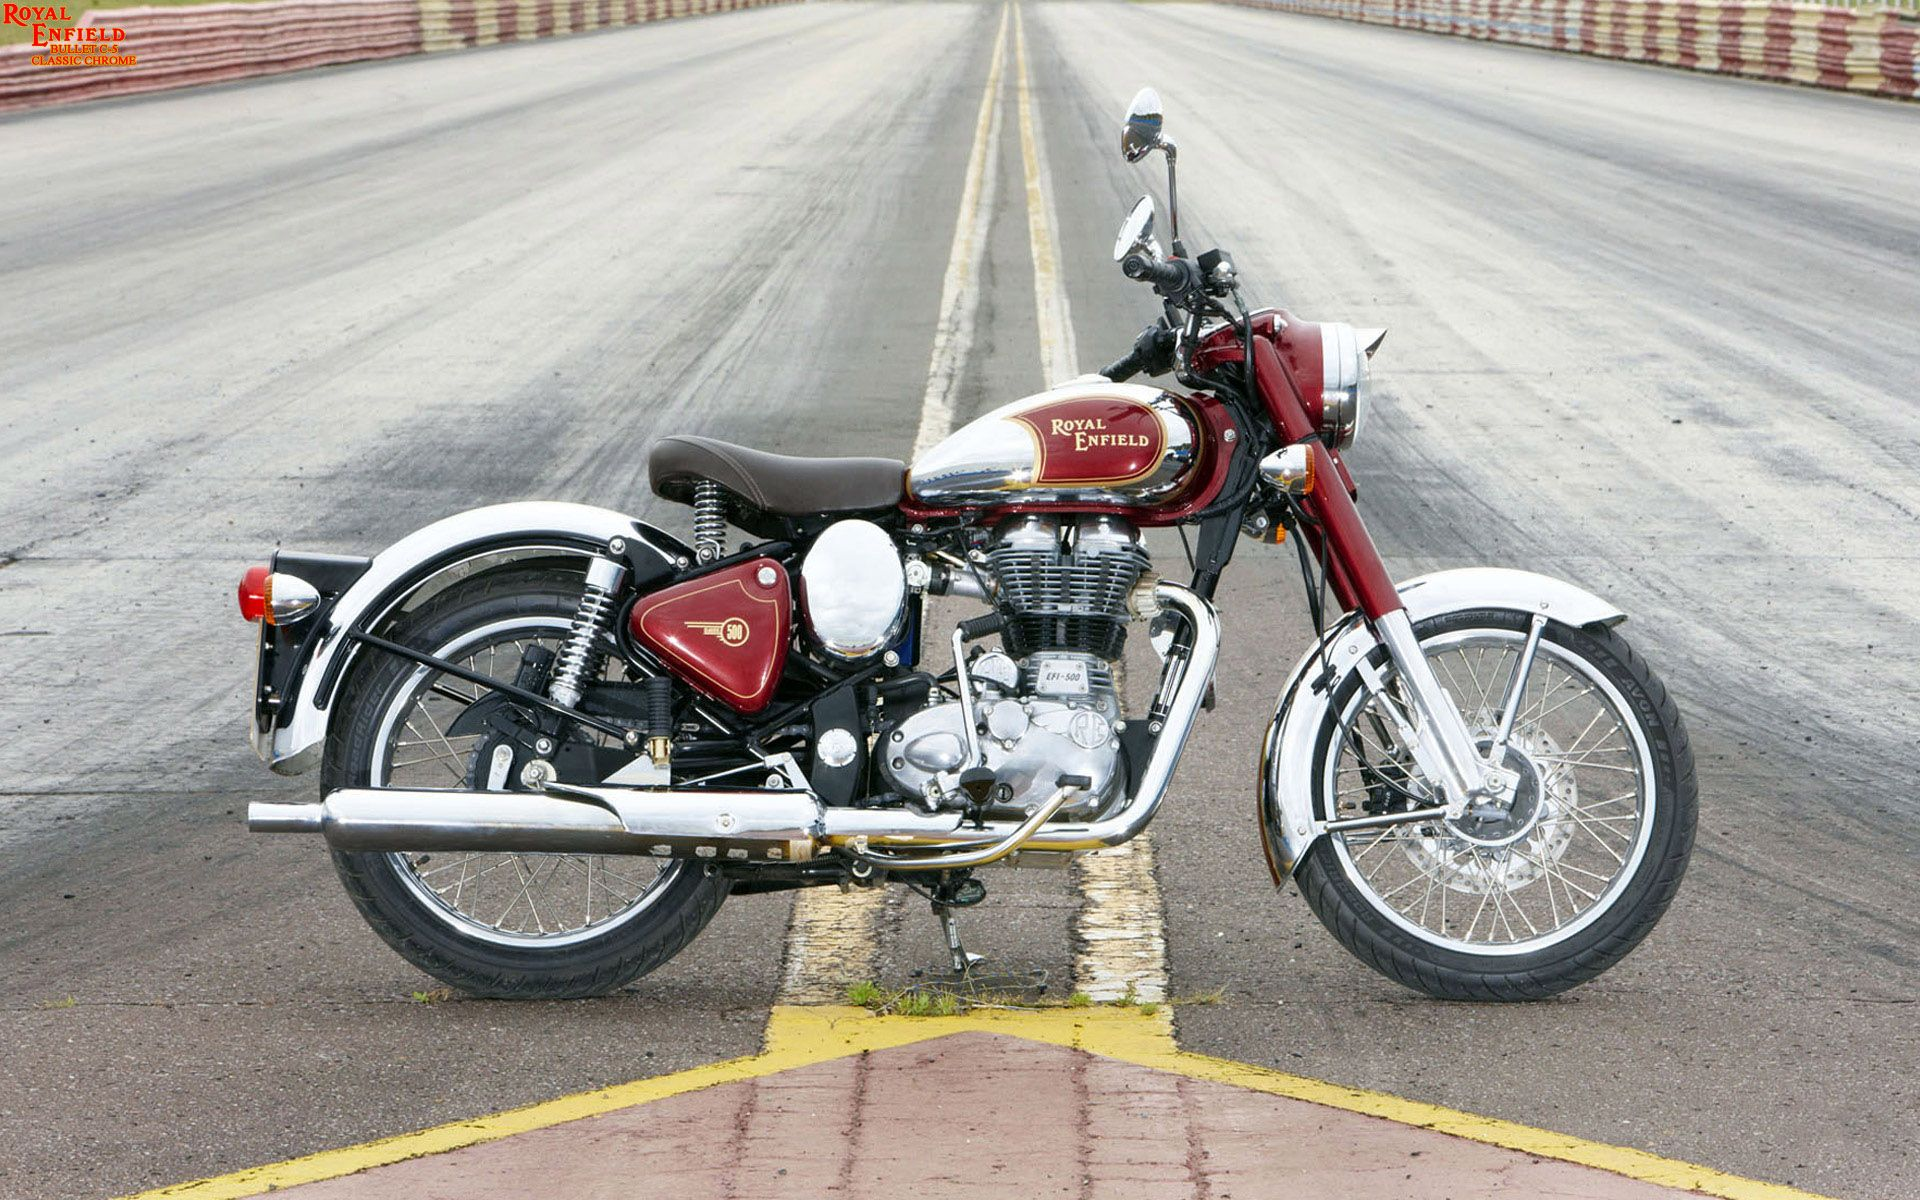 Hd wallpaper royal enfield - Find This Pin And More On Motorcycle Hd Wallpapers Royal Enfield